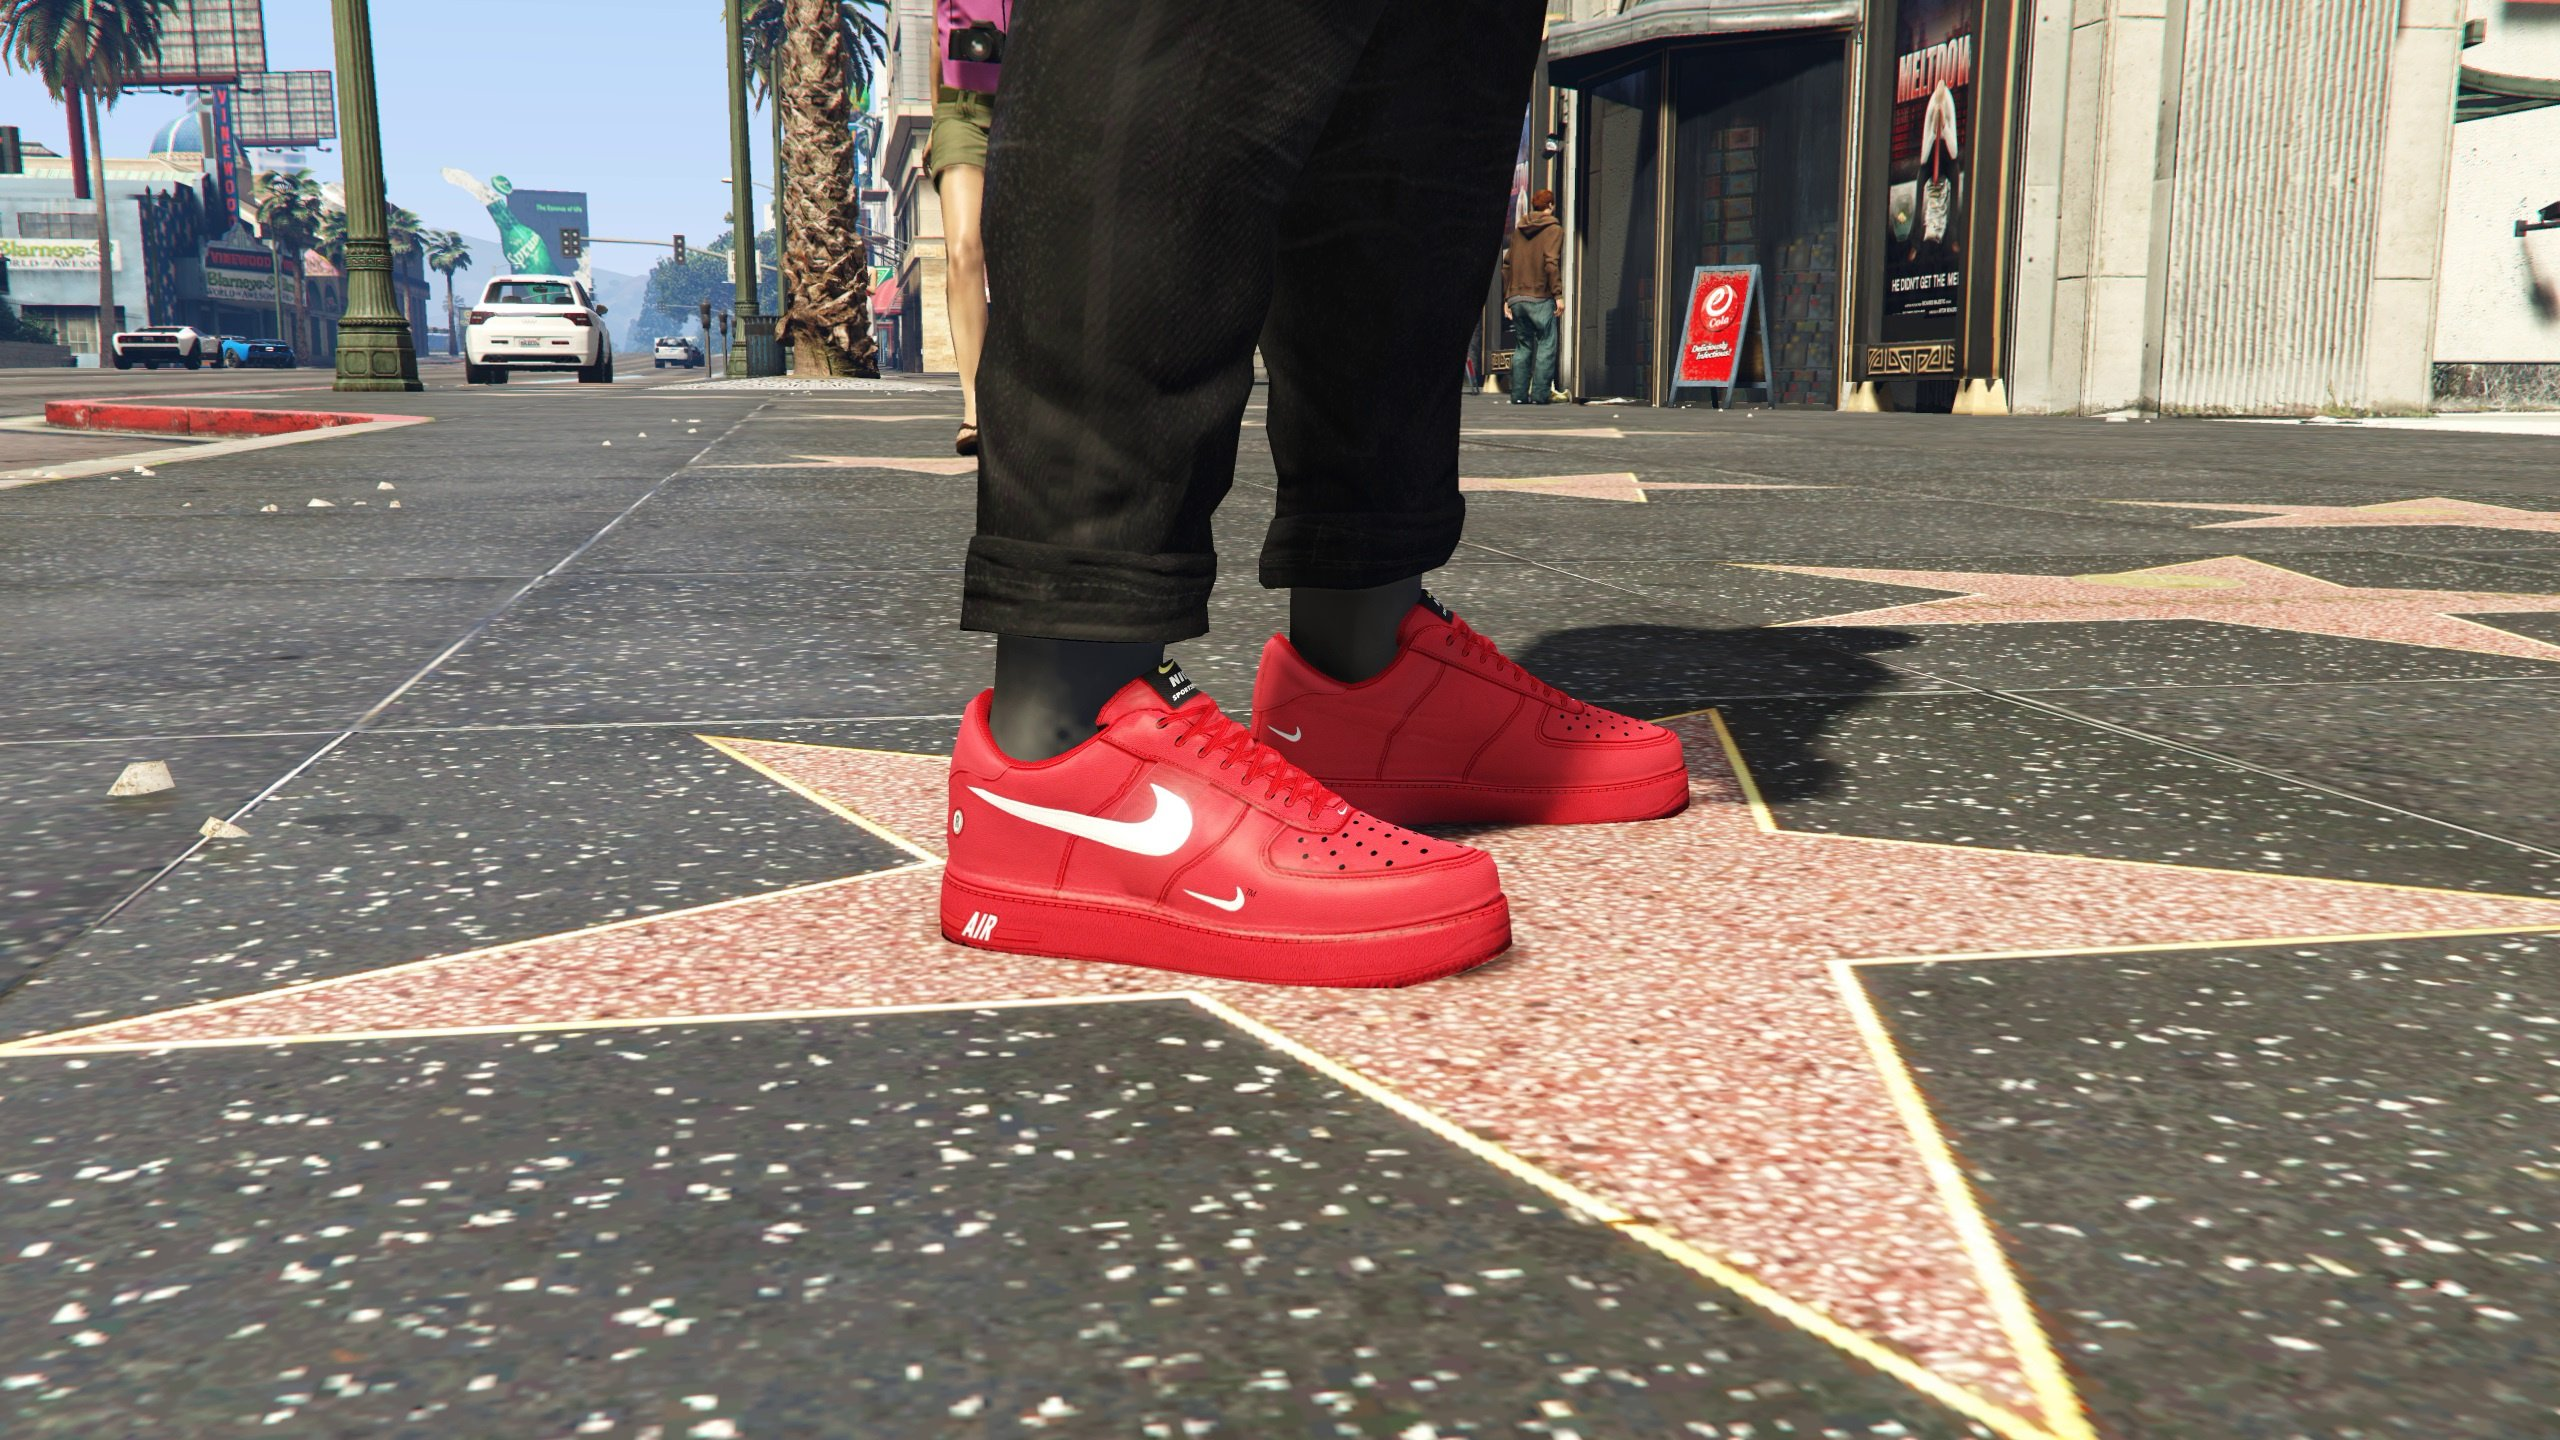 Nike air force 1 07 mid lv8 utility pack red gallerygfc rosso sportivo